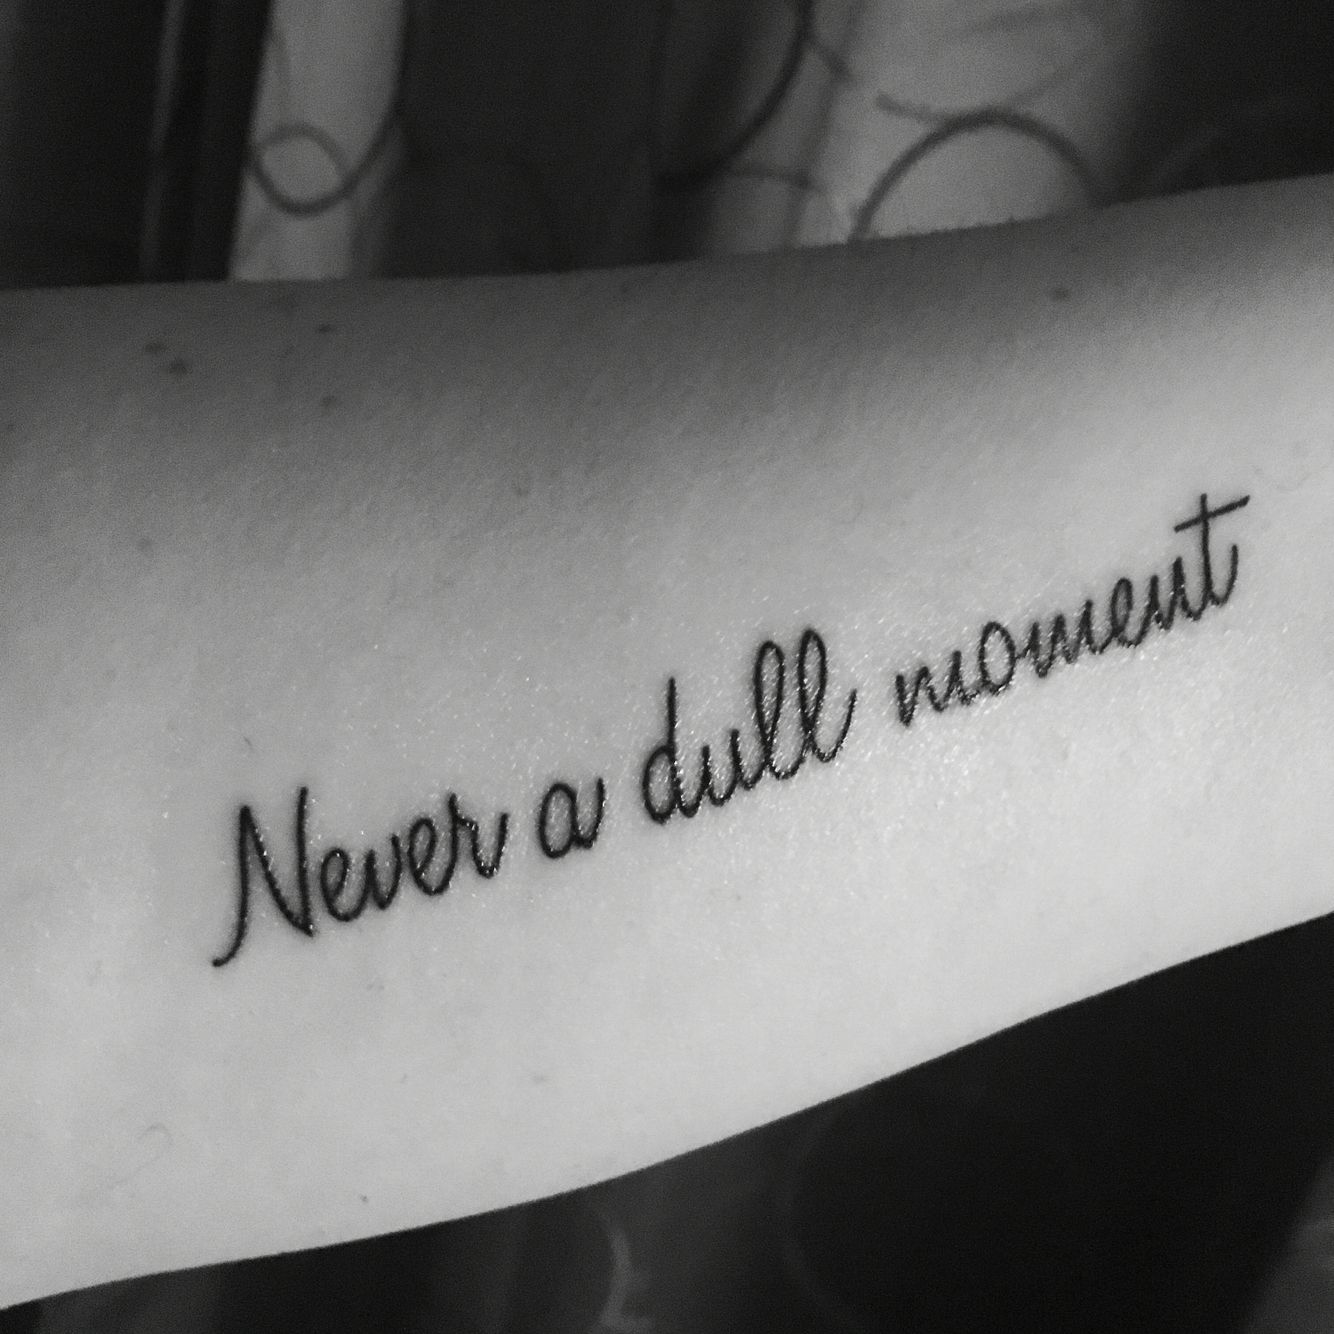 9b9b73fae49e0 Script tattoo by Robert Kidd at Club Tattoo in Las Vegas. Never a dull  moment. An important phrase that means a lot to me!! Honey Script font.